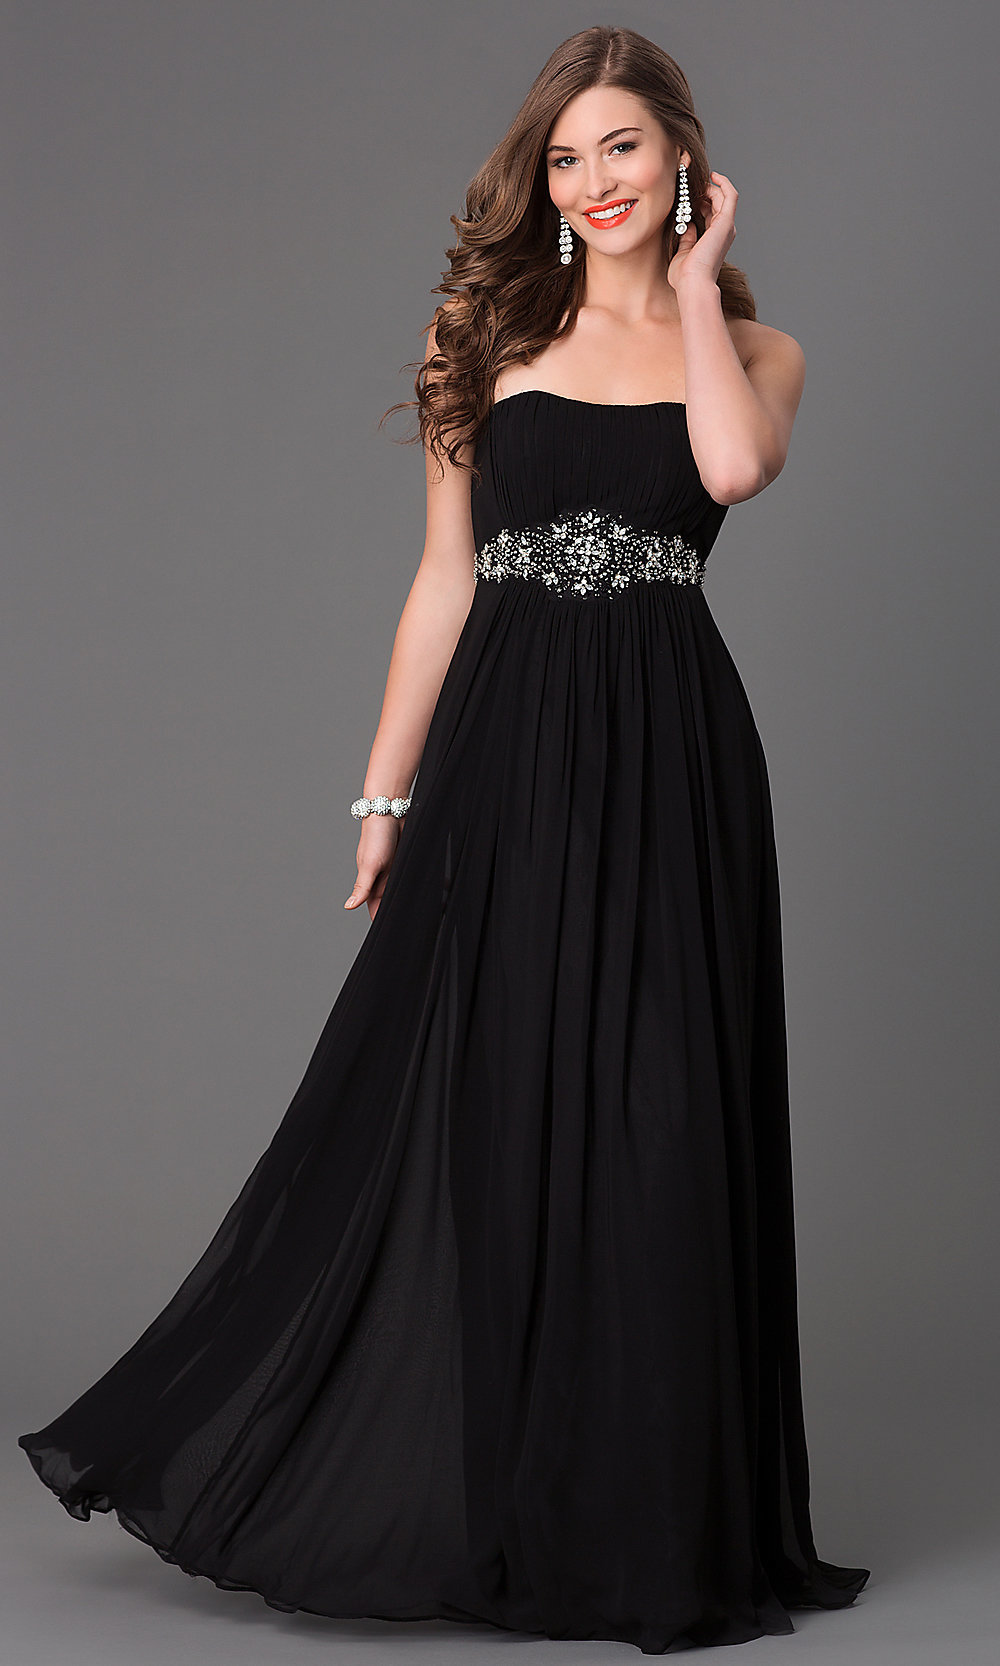 Classic Long Strapless Dress- Strapless Evening Gowns- PromGirl